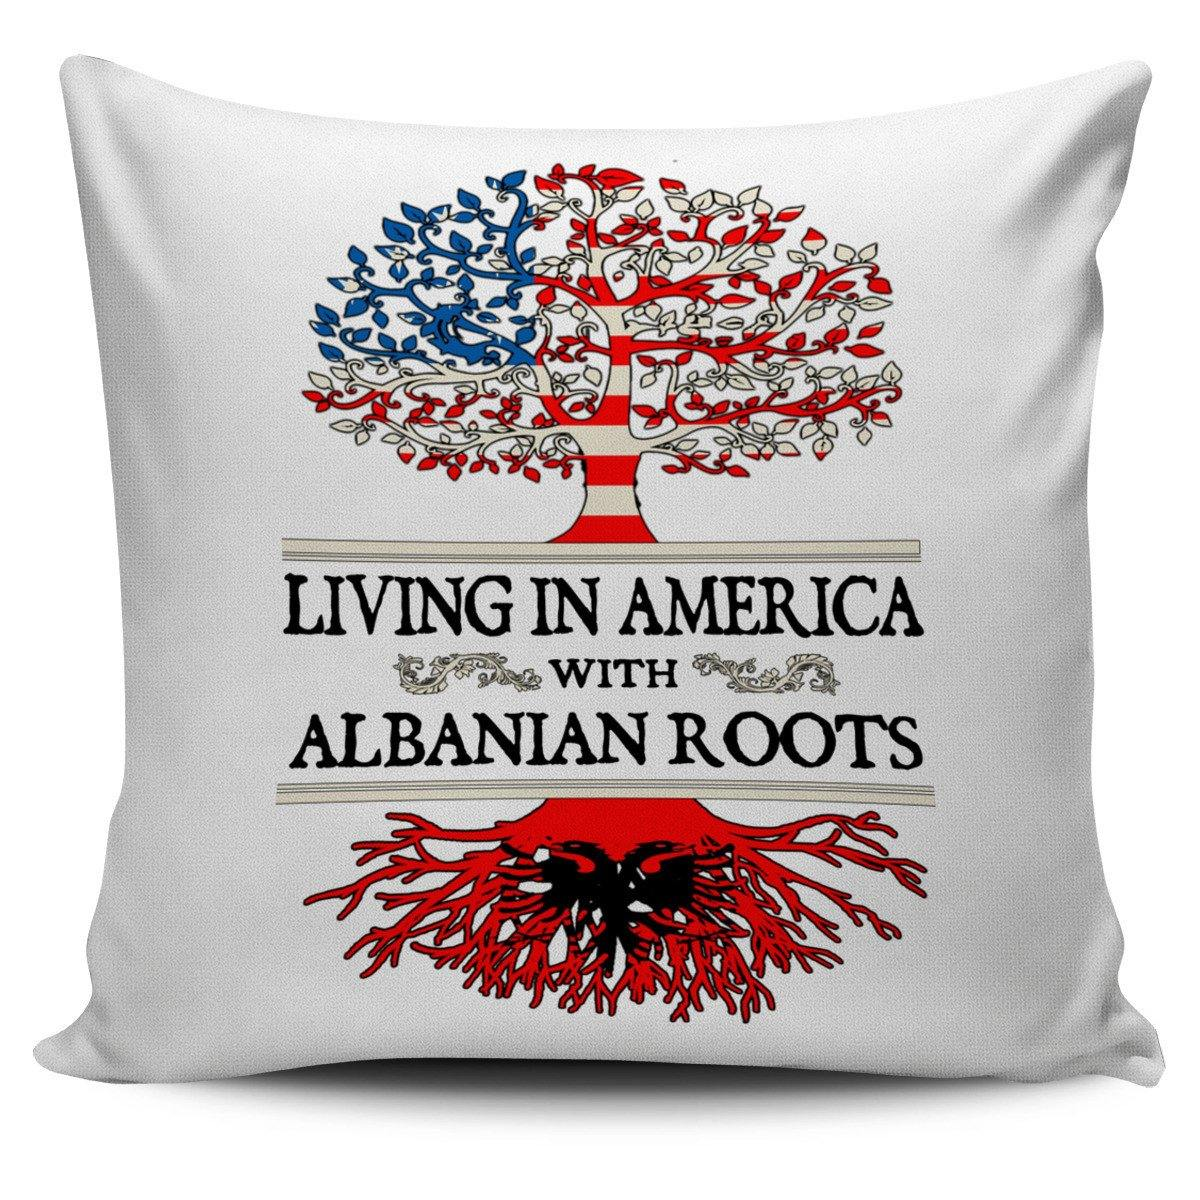 Living in America With Albanian Roots Pillow Covers